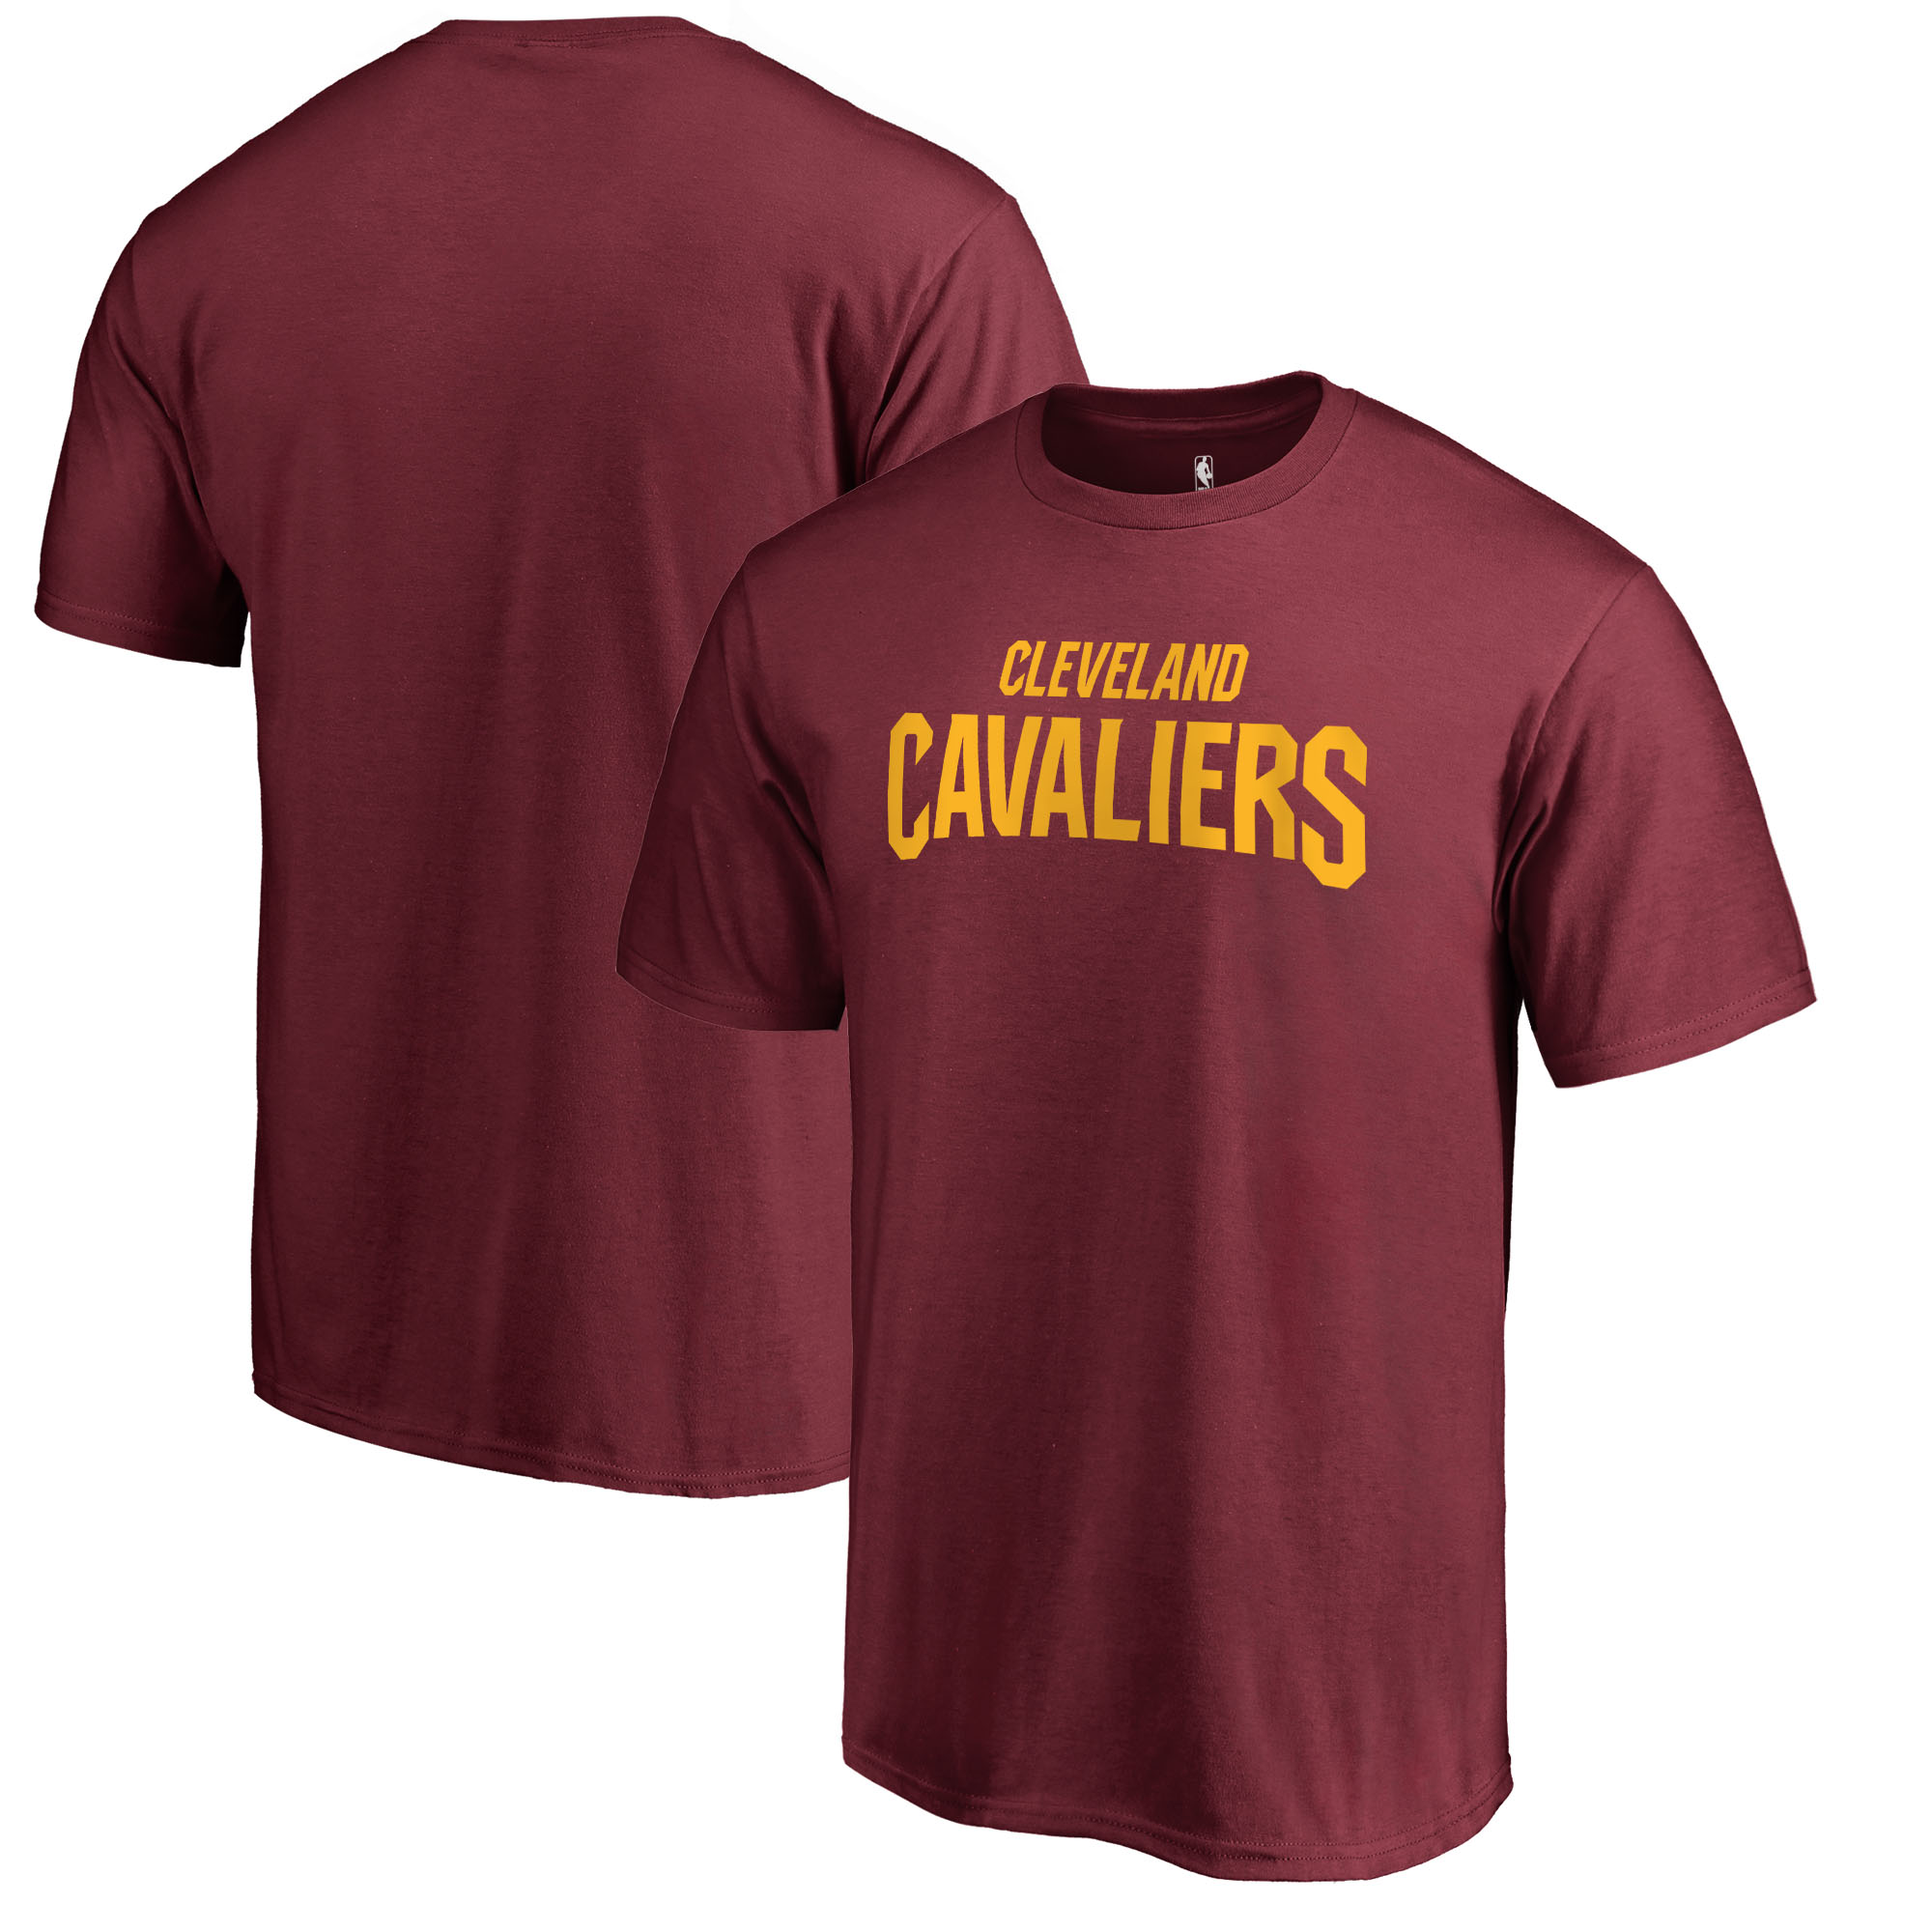 Cleveland Cavaliers Fanatics Branded Primary Wordmark Big and Tall T-Shirt - Wine